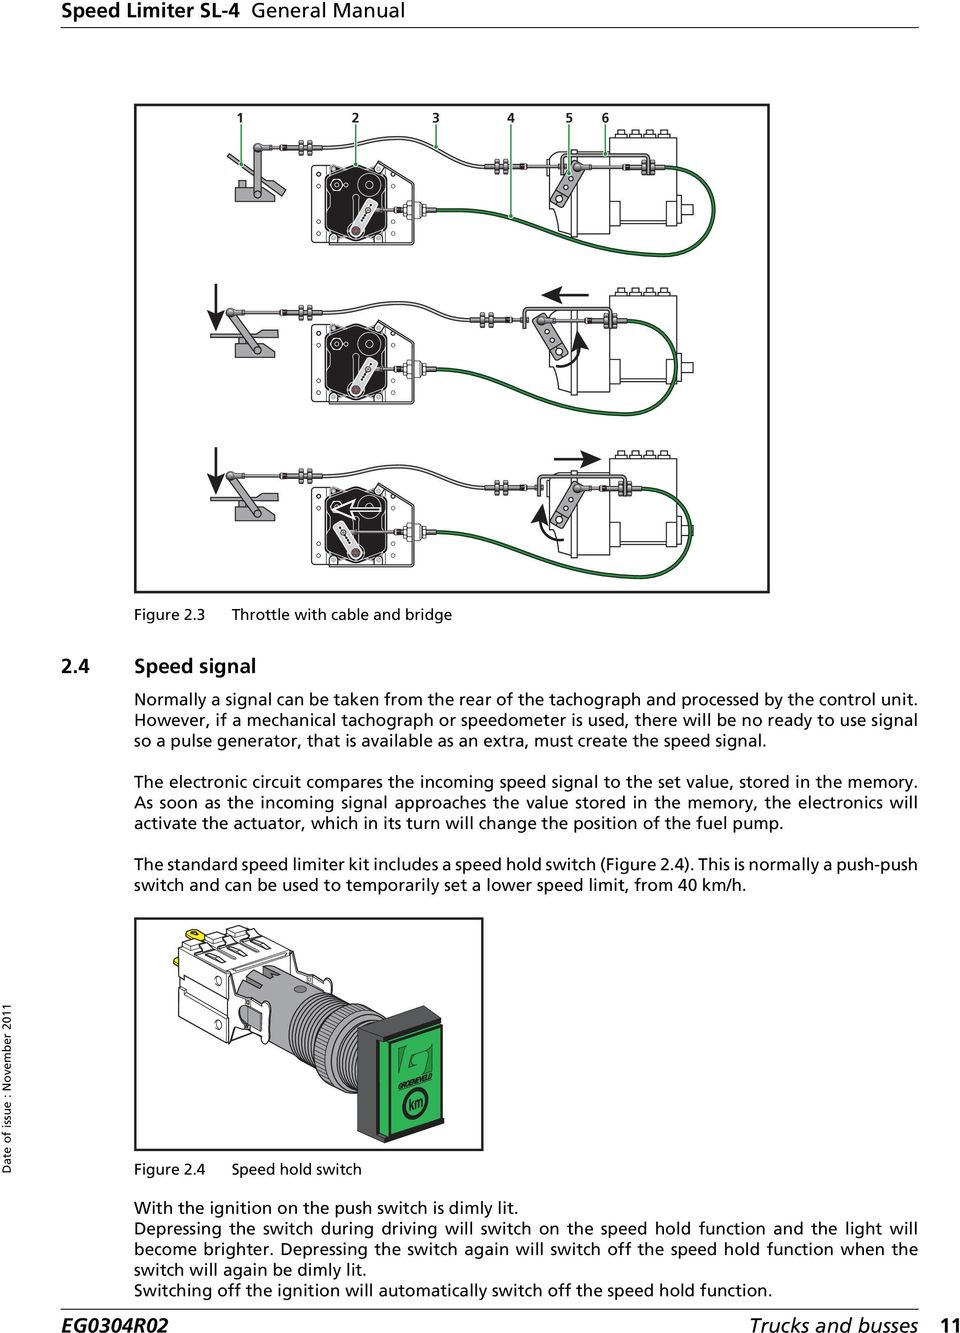 [SCHEMATICS_4HG]  General Manual. Speed Limiter SL-4 EG0304R02. Your efficiency is our  Challenge! - PDF Free Download | Wiring Diagram Rev Limiter Vw Golf Gti |  | DocPlayer.net